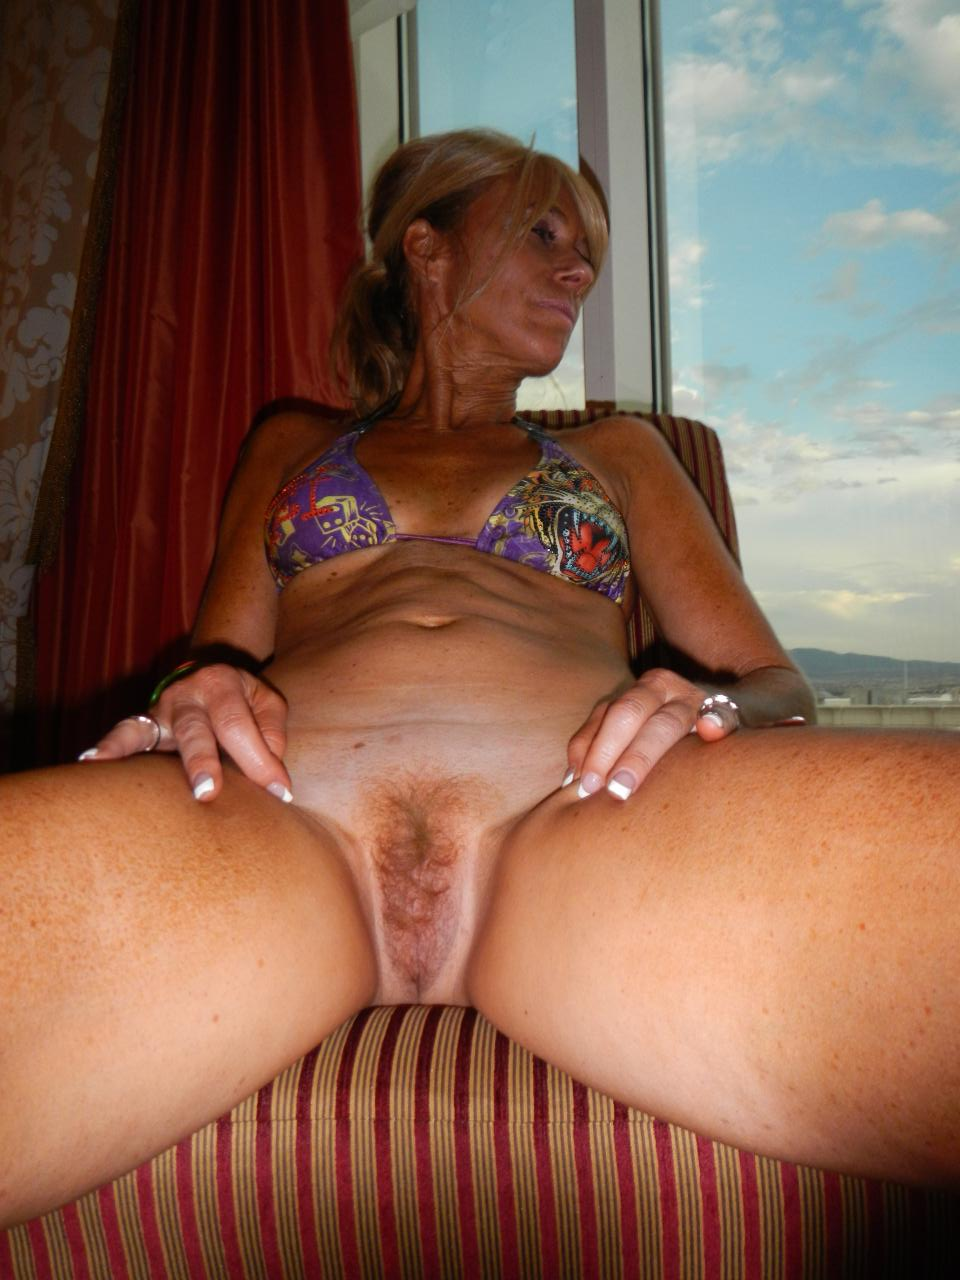 she is spanked shaved and diapered